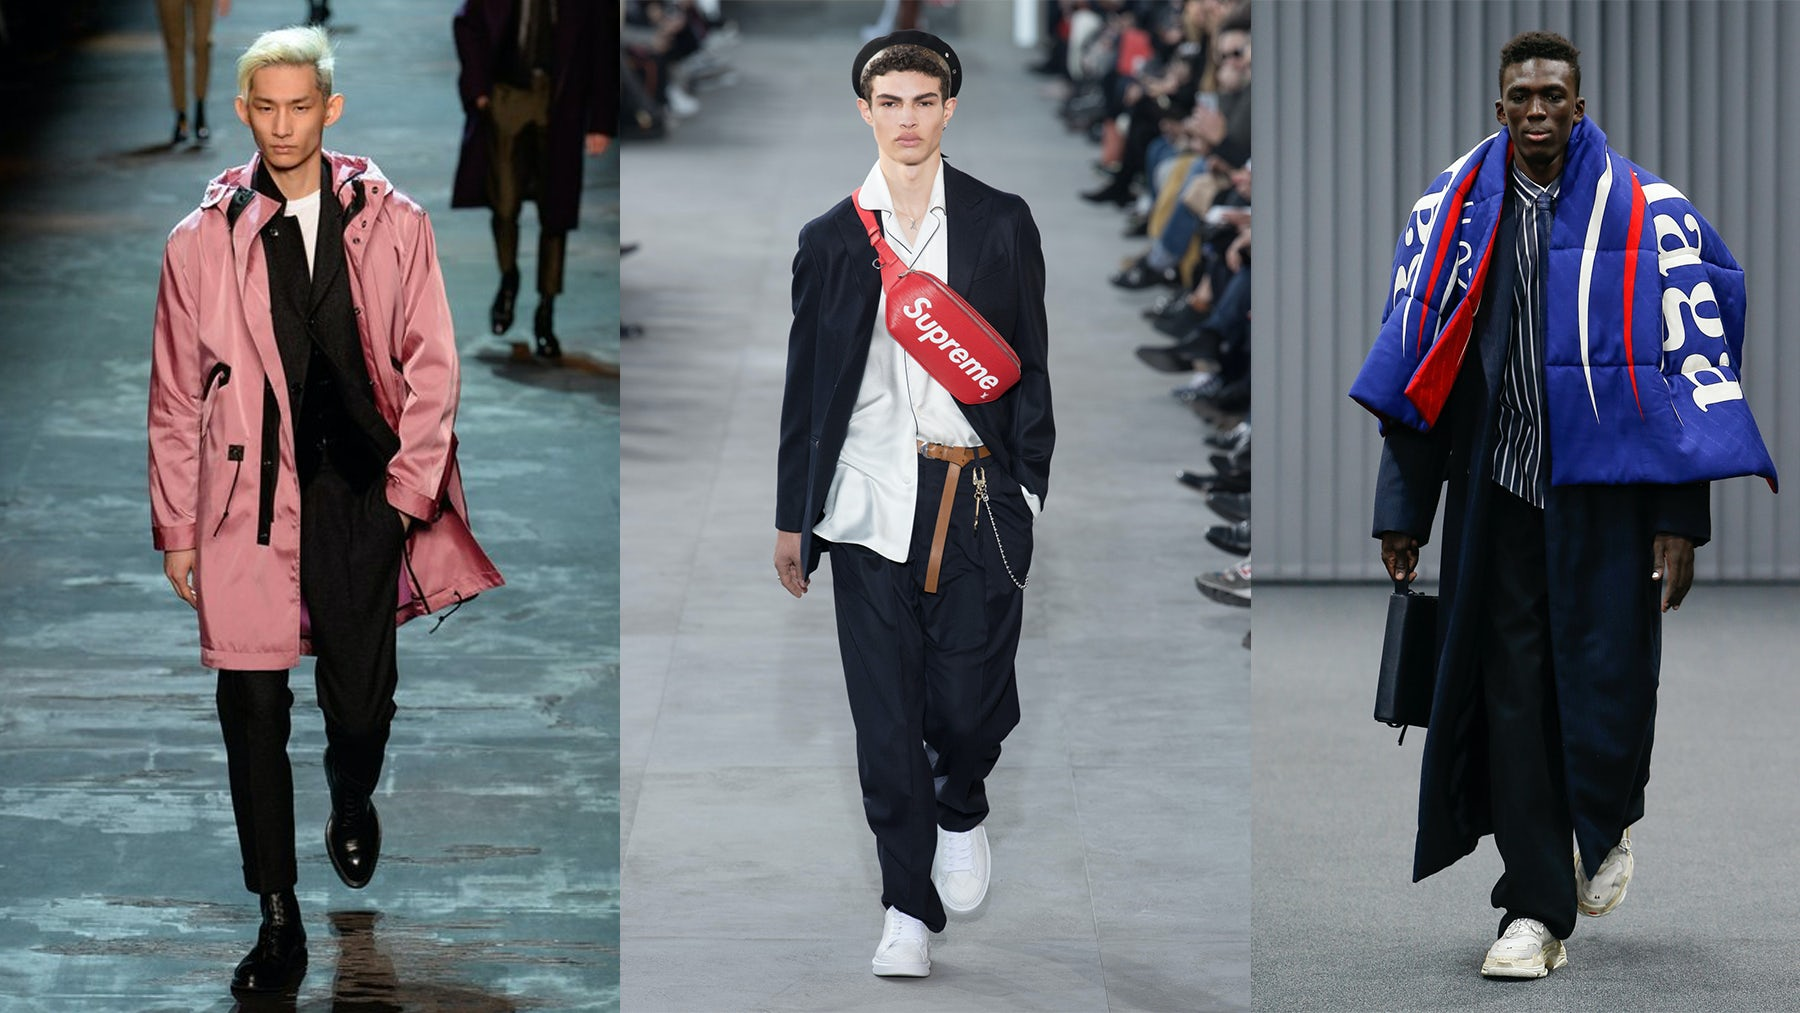 From left: Berluti, Louis Vuitton, Balenciaga | Source: InDigital